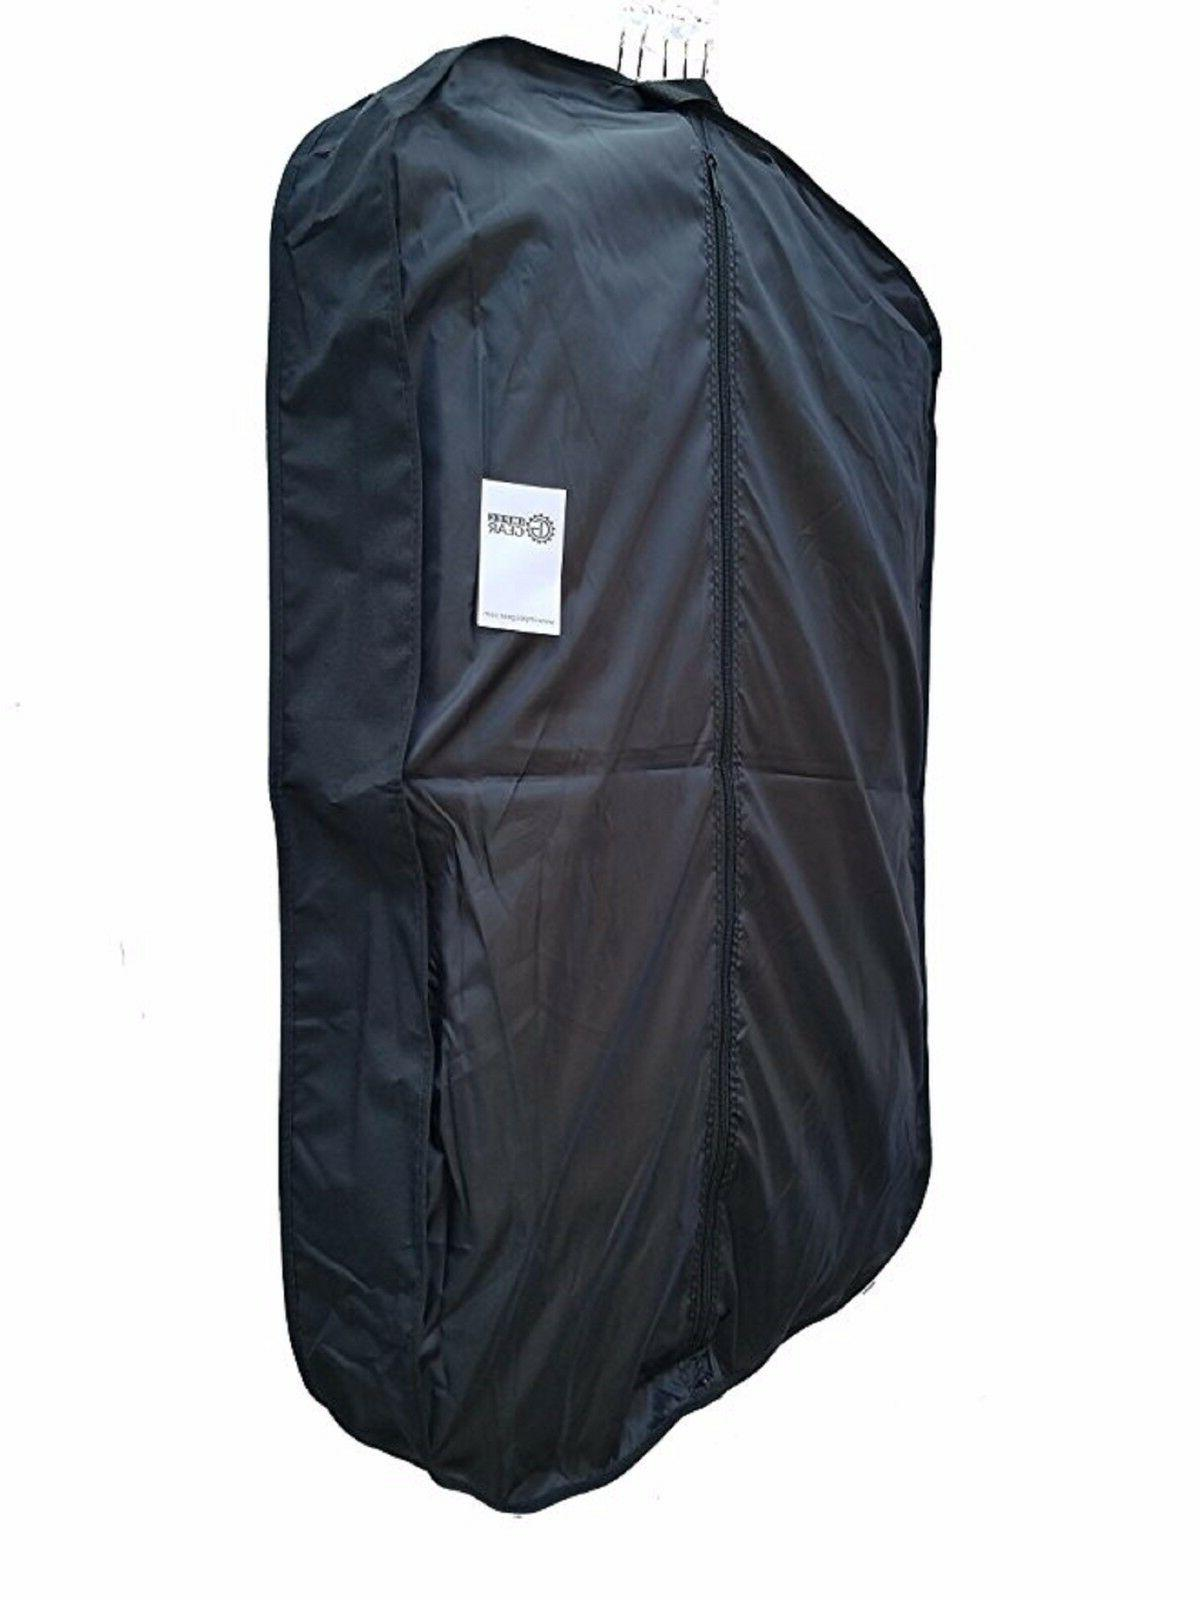 Deluxe Zipped Garment Travel Bag 39x24 Storage